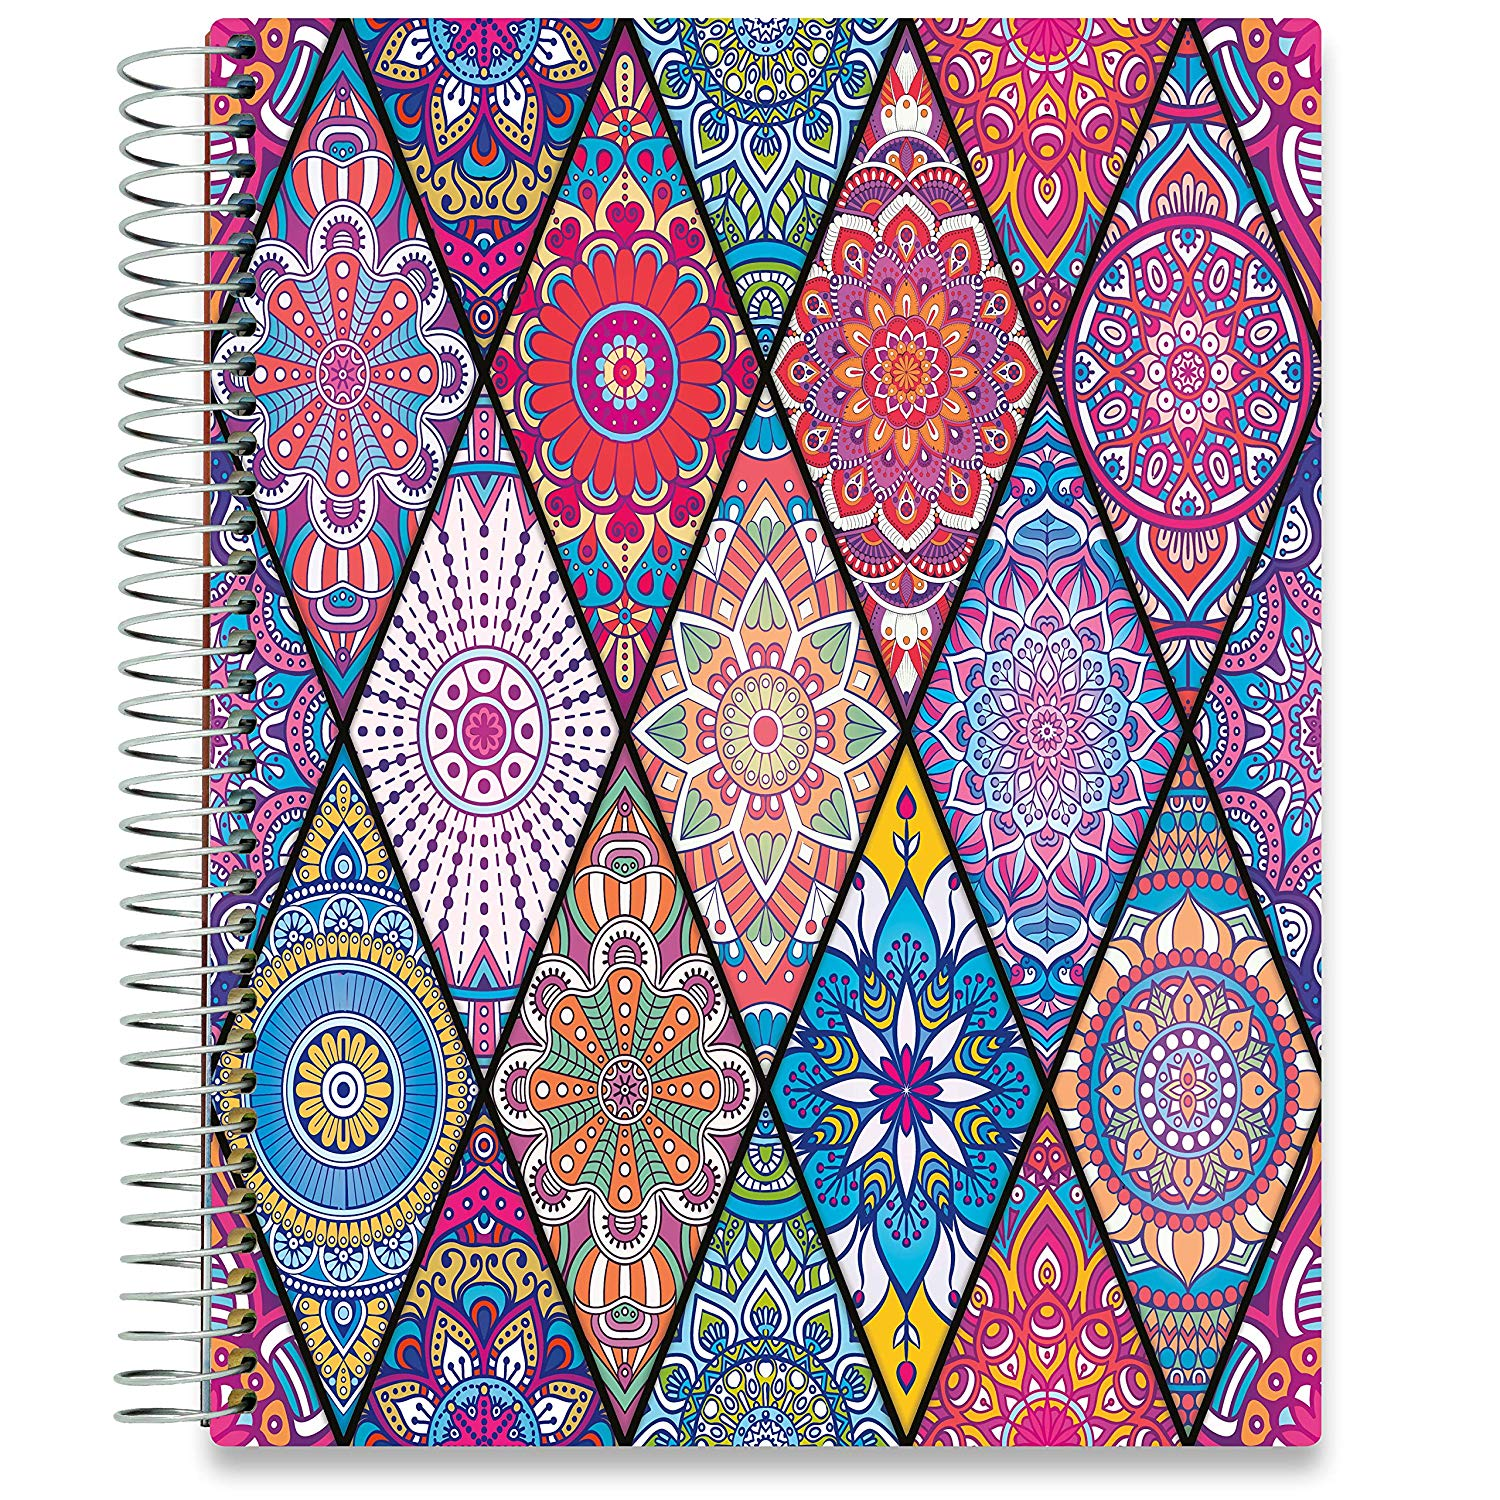 NEW: April 2020-2021 Planner - 8.5x11 - Bejeweled v2-Office Product-Tools4Wisdom